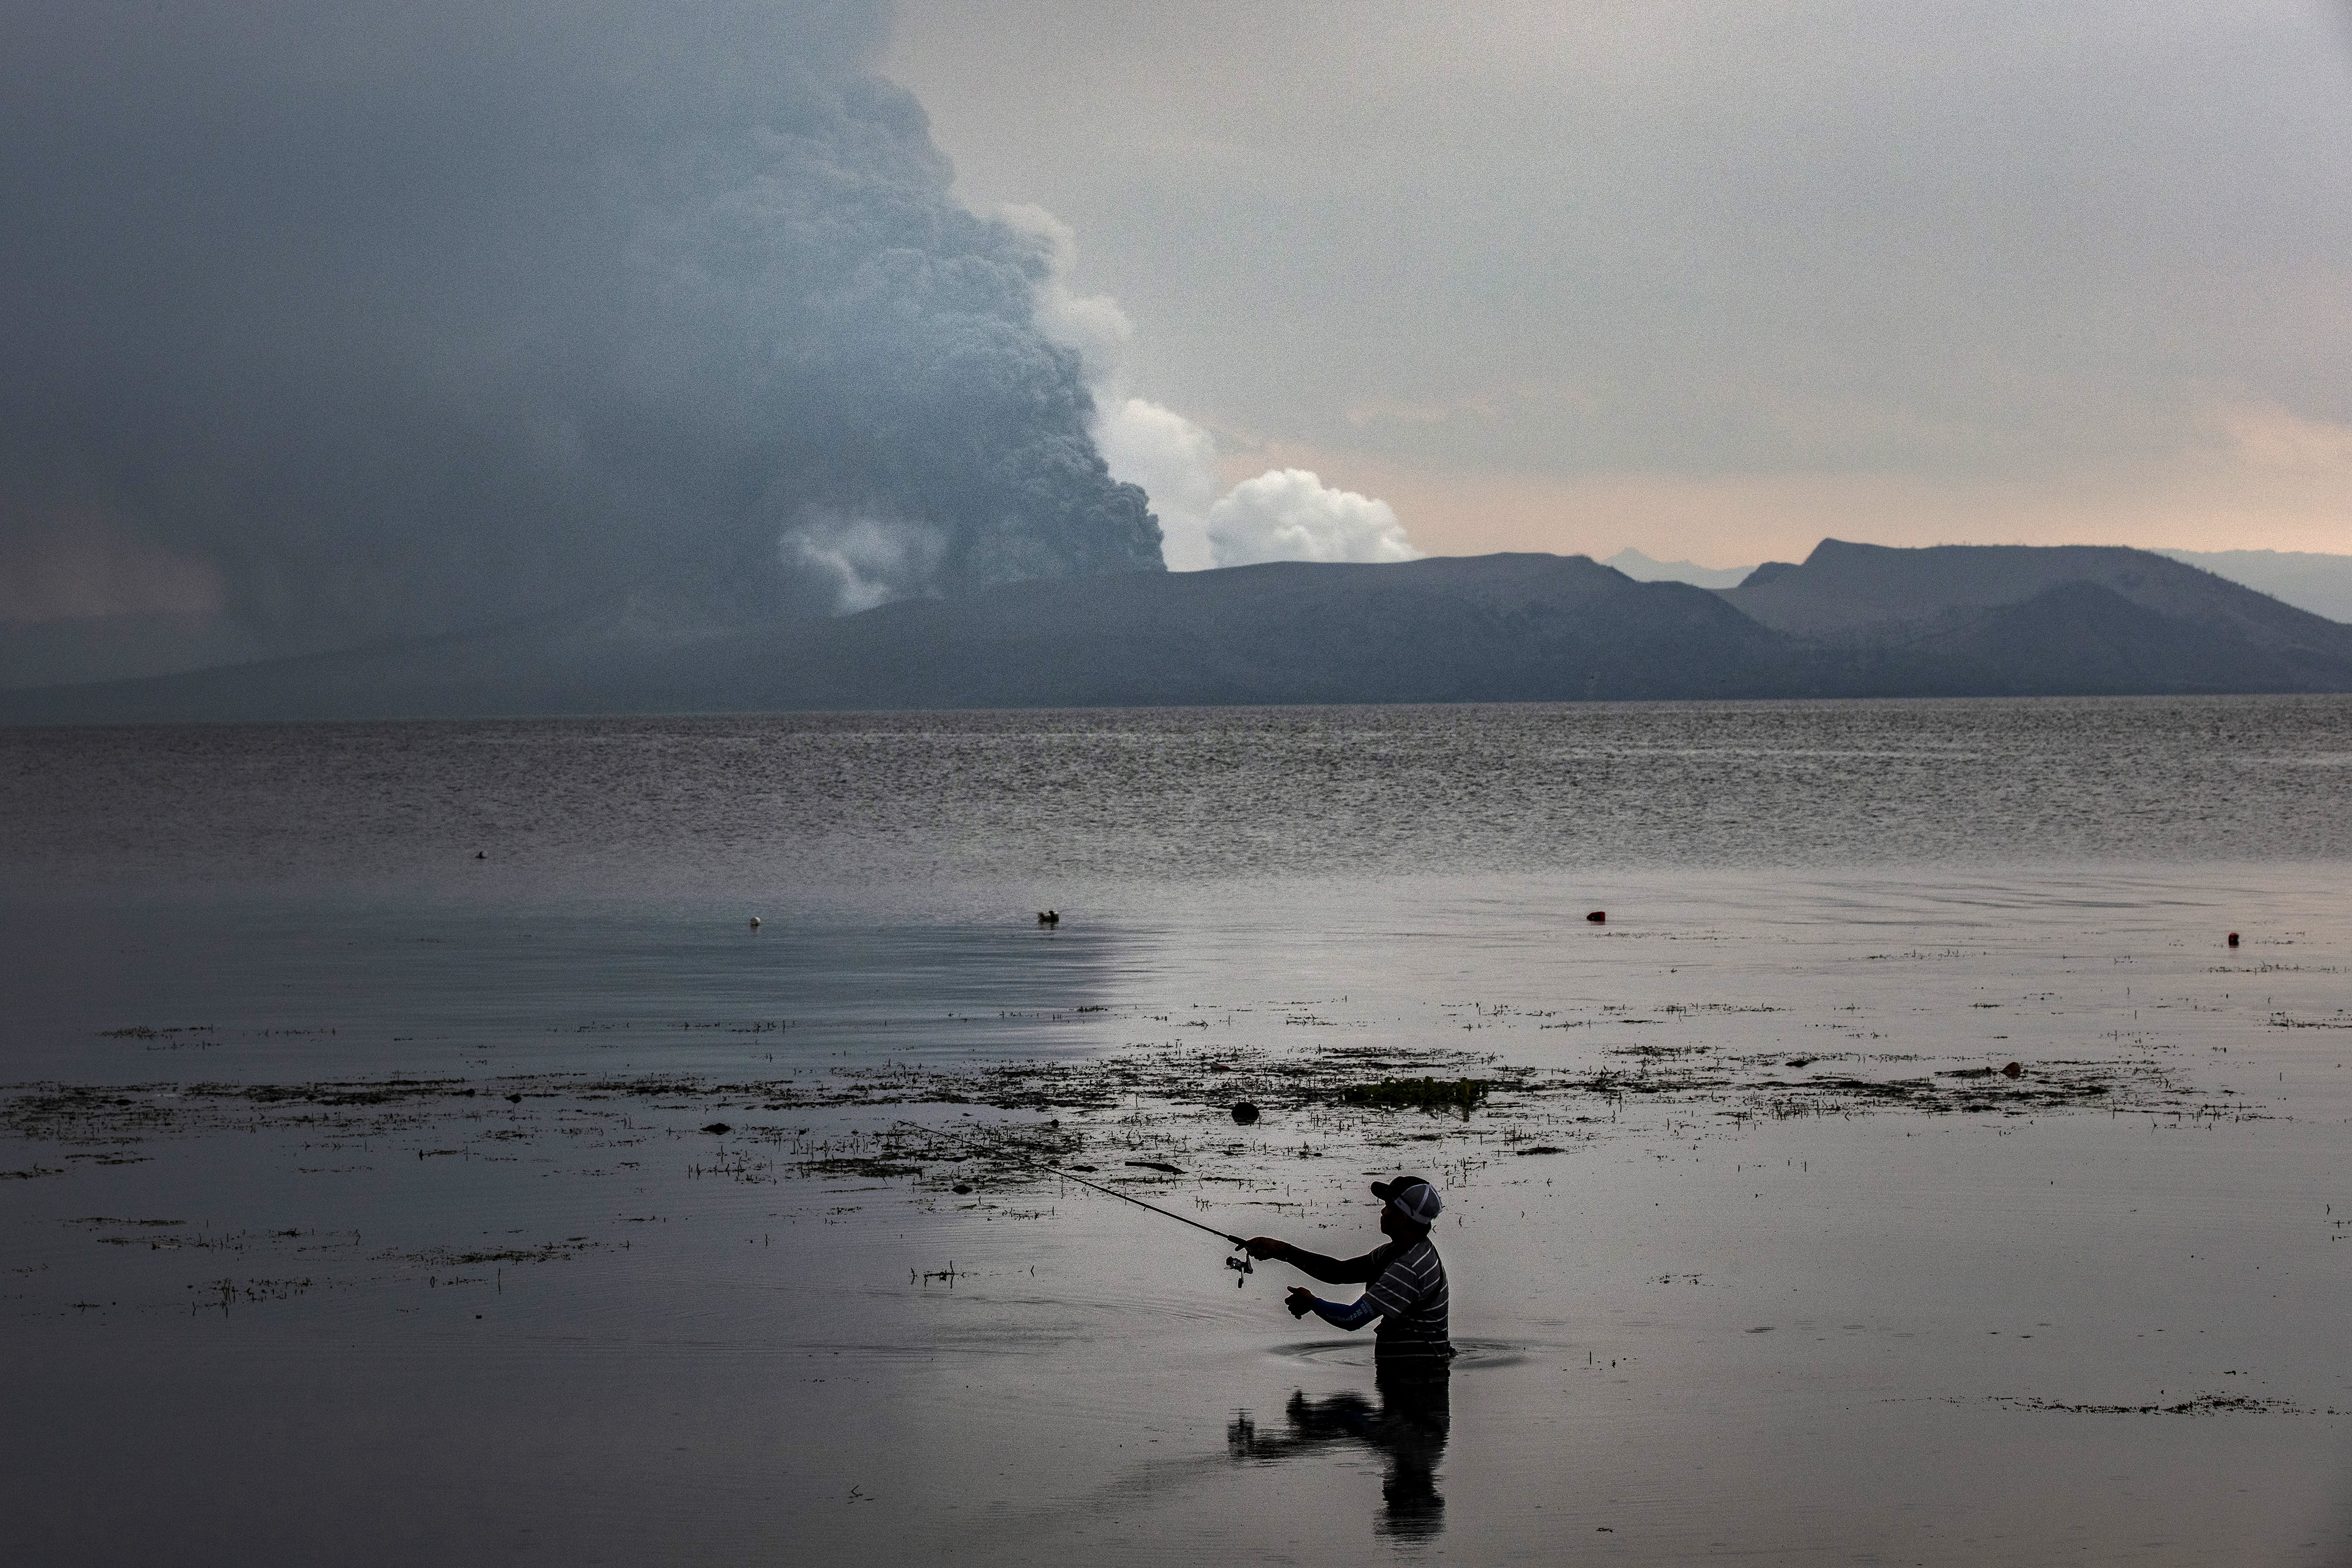 A resident fishes at a lake as Taal Volcano erupts on January 13, 2020 in Balete, Batangas province, Philippines.